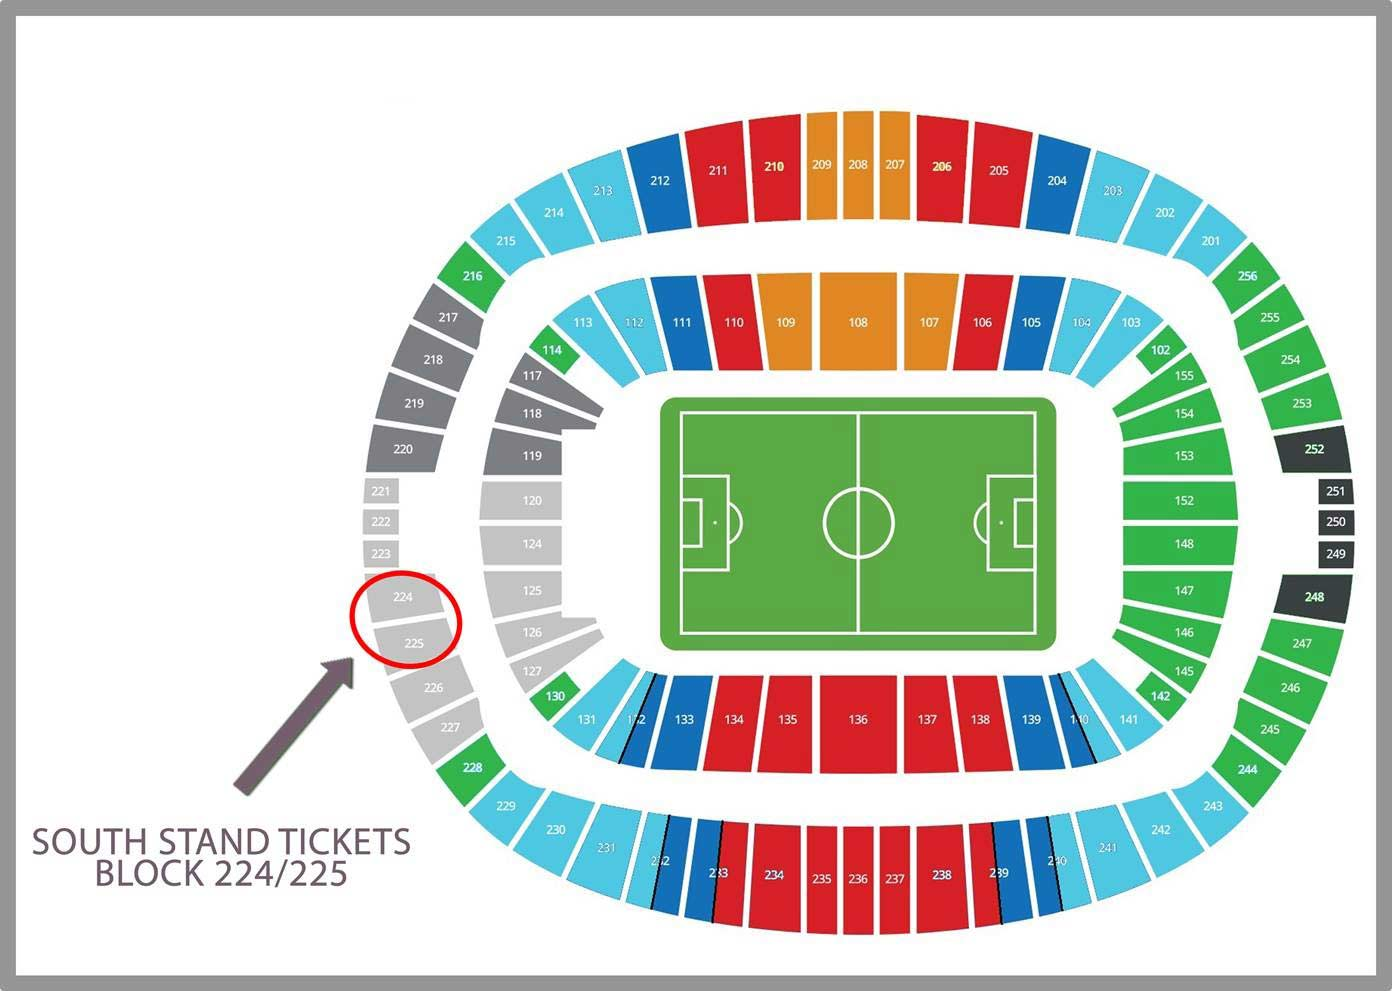 Plano del estadio Olympic Stadium